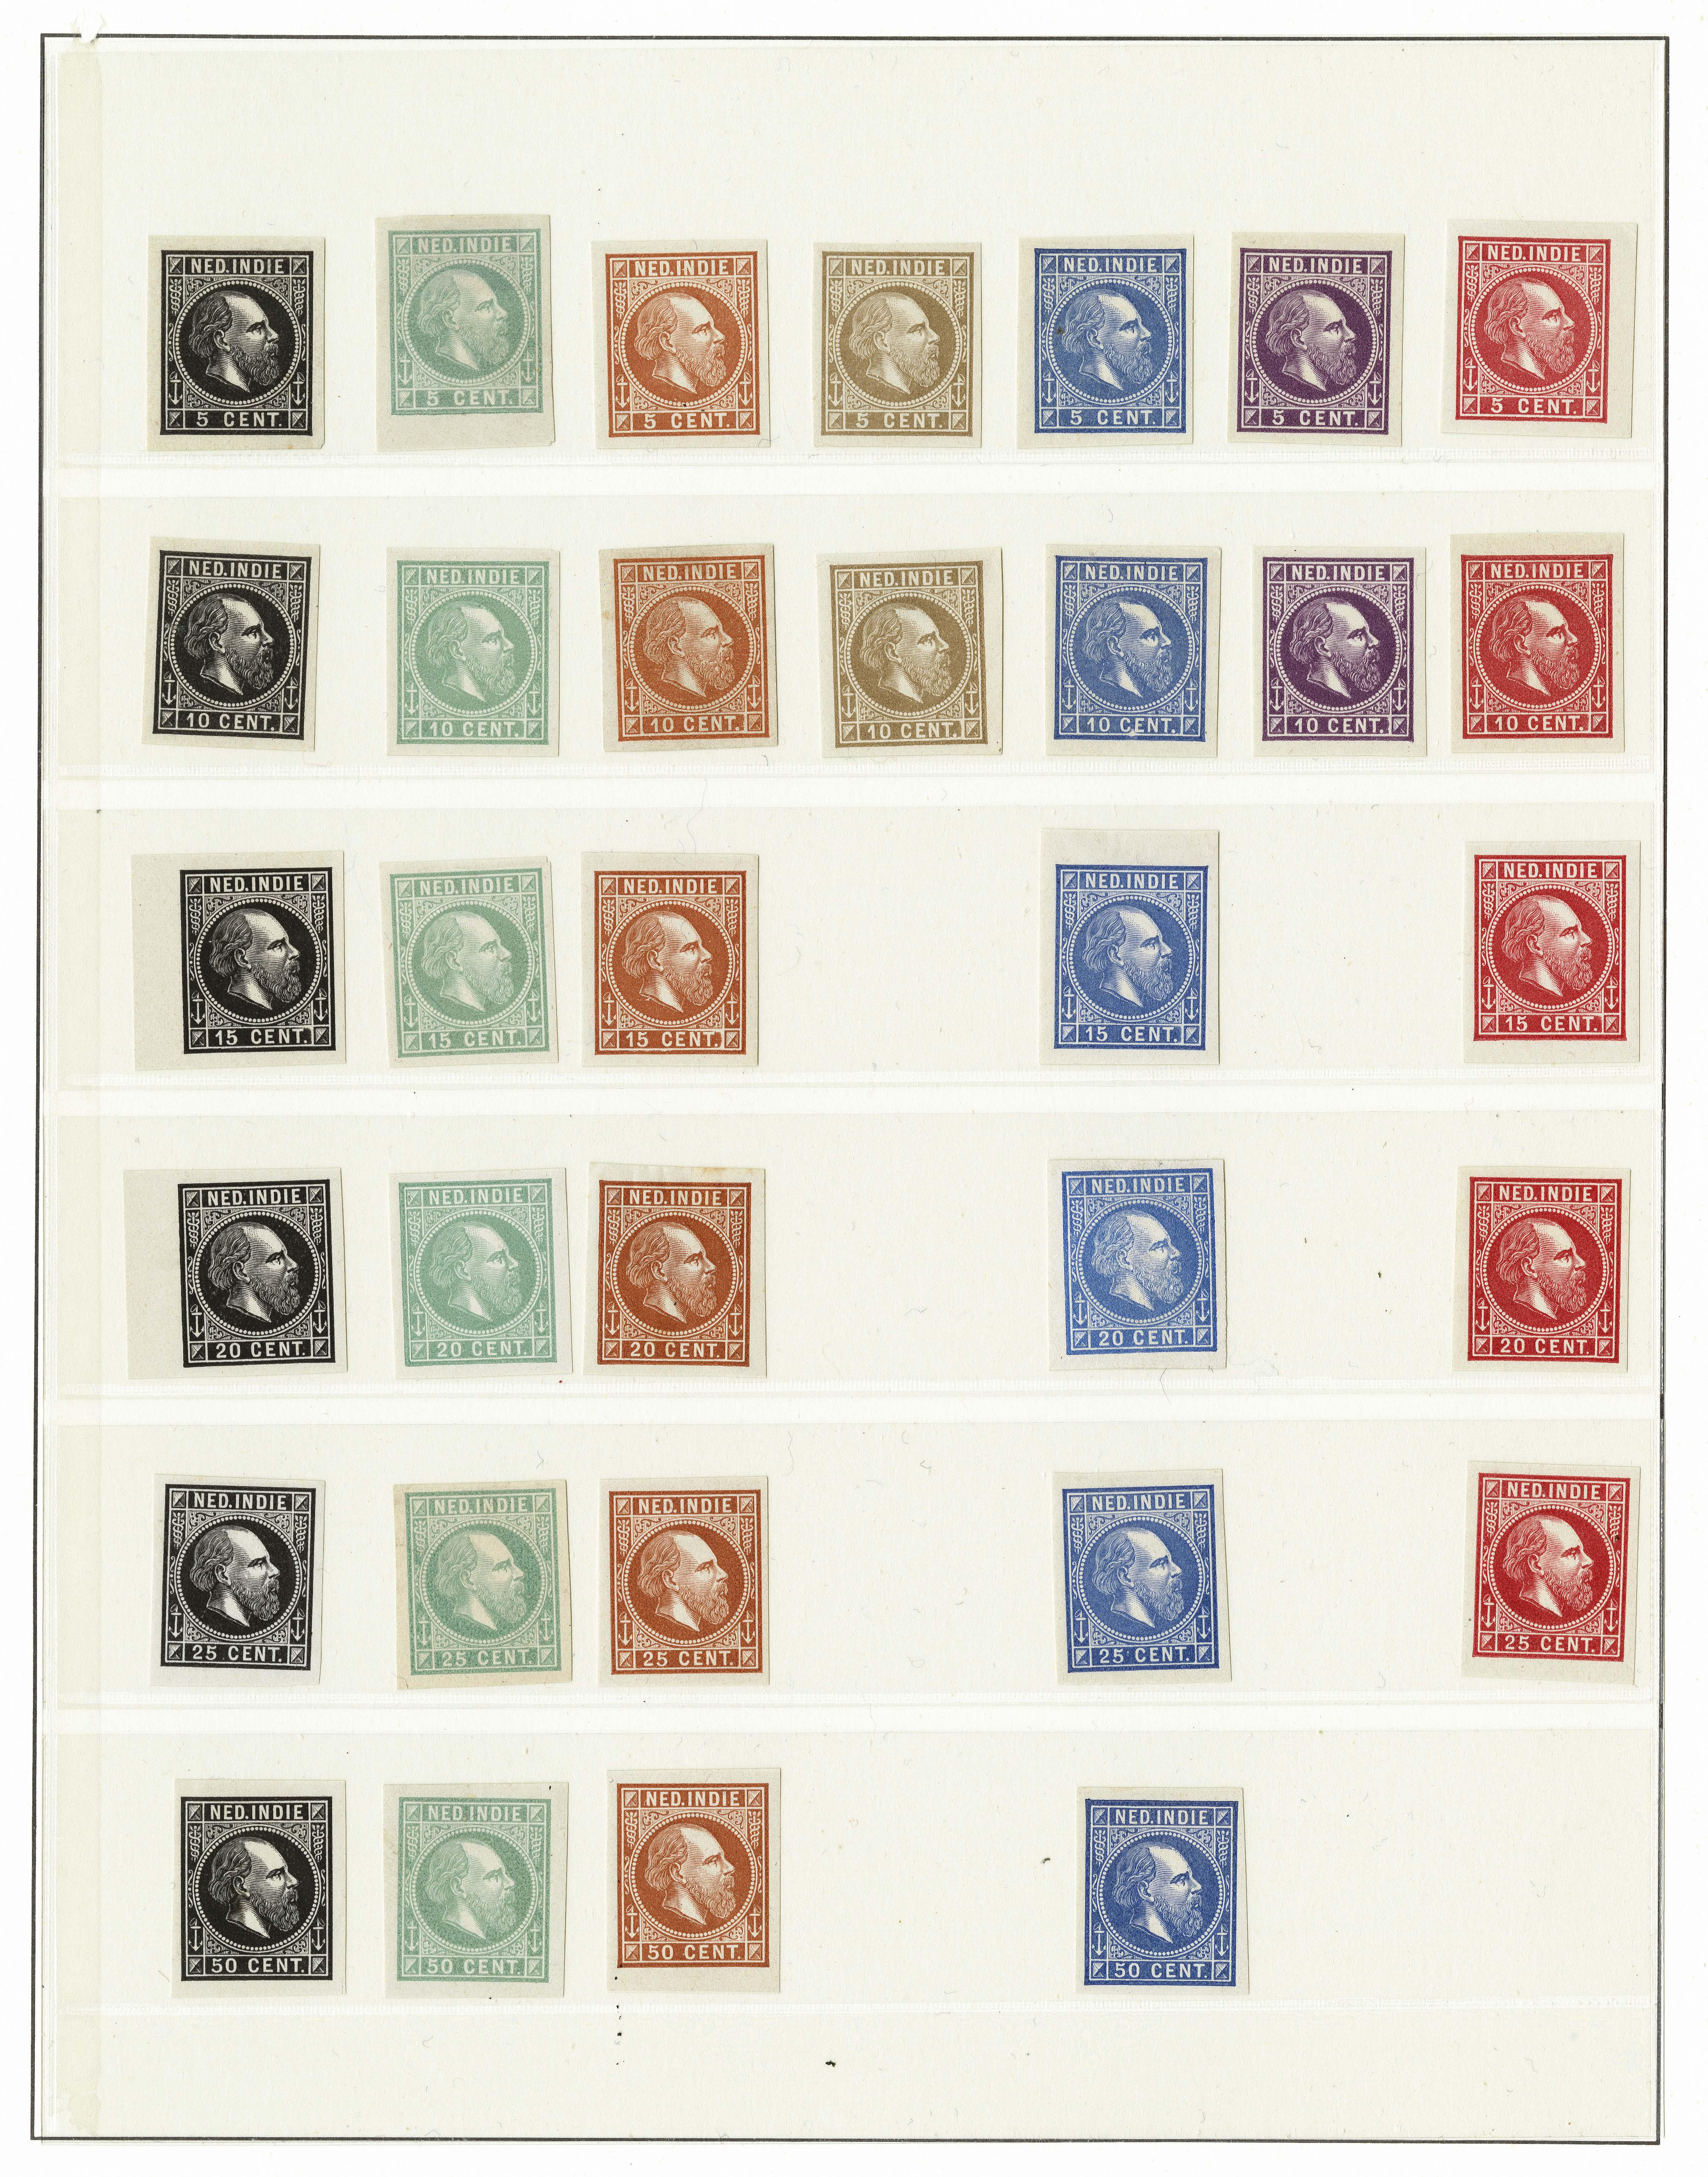 Lot 3305 - Netherlands and former colonies Netherlands Indies -  Corinphila Veilingen Auction 250-253 - Day 4 - Proofs of Netherlands former colonies